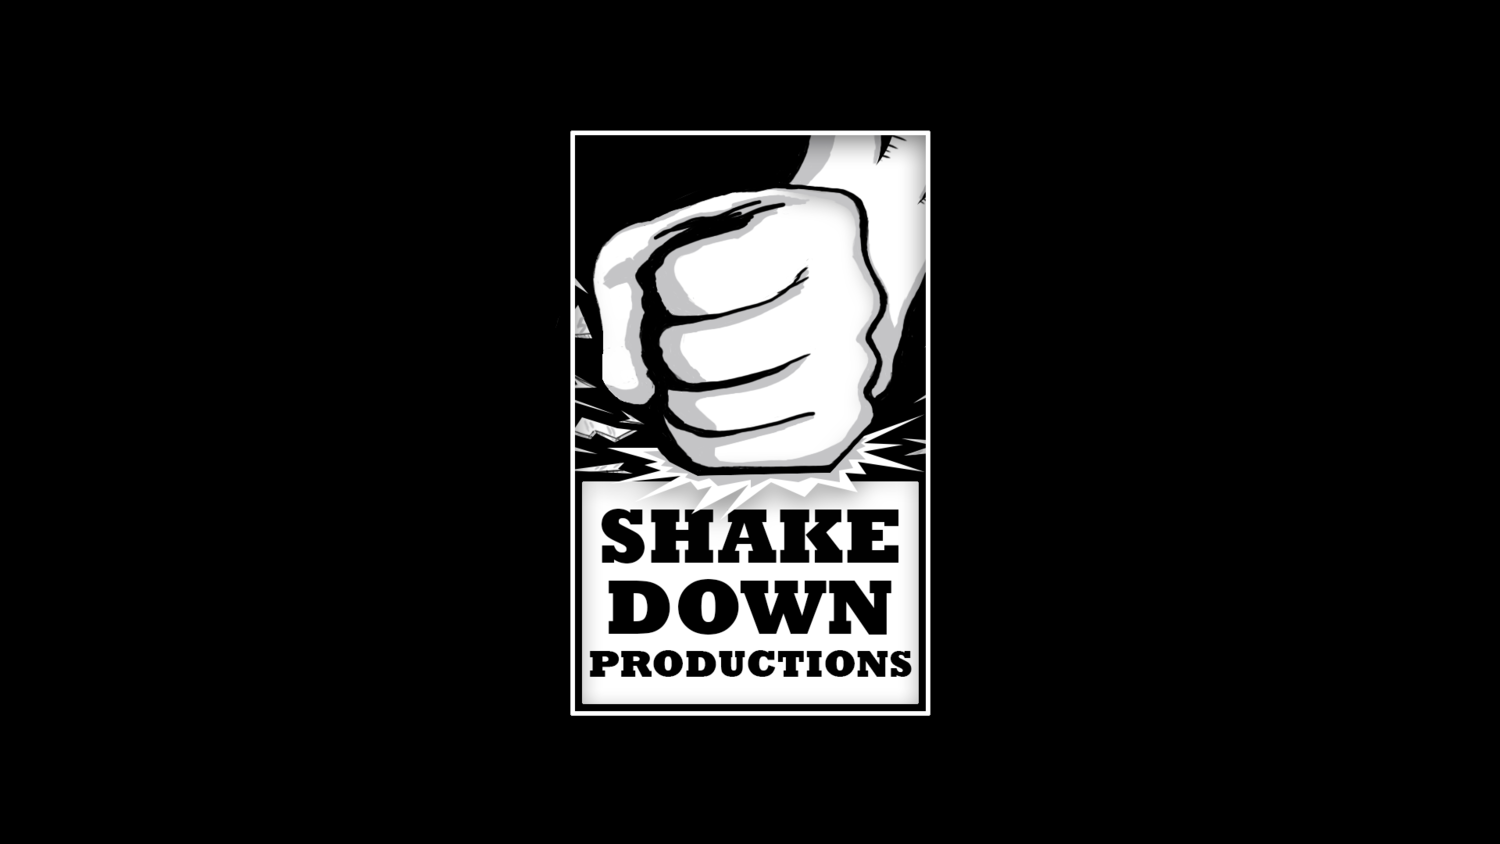 Shakedown Productions